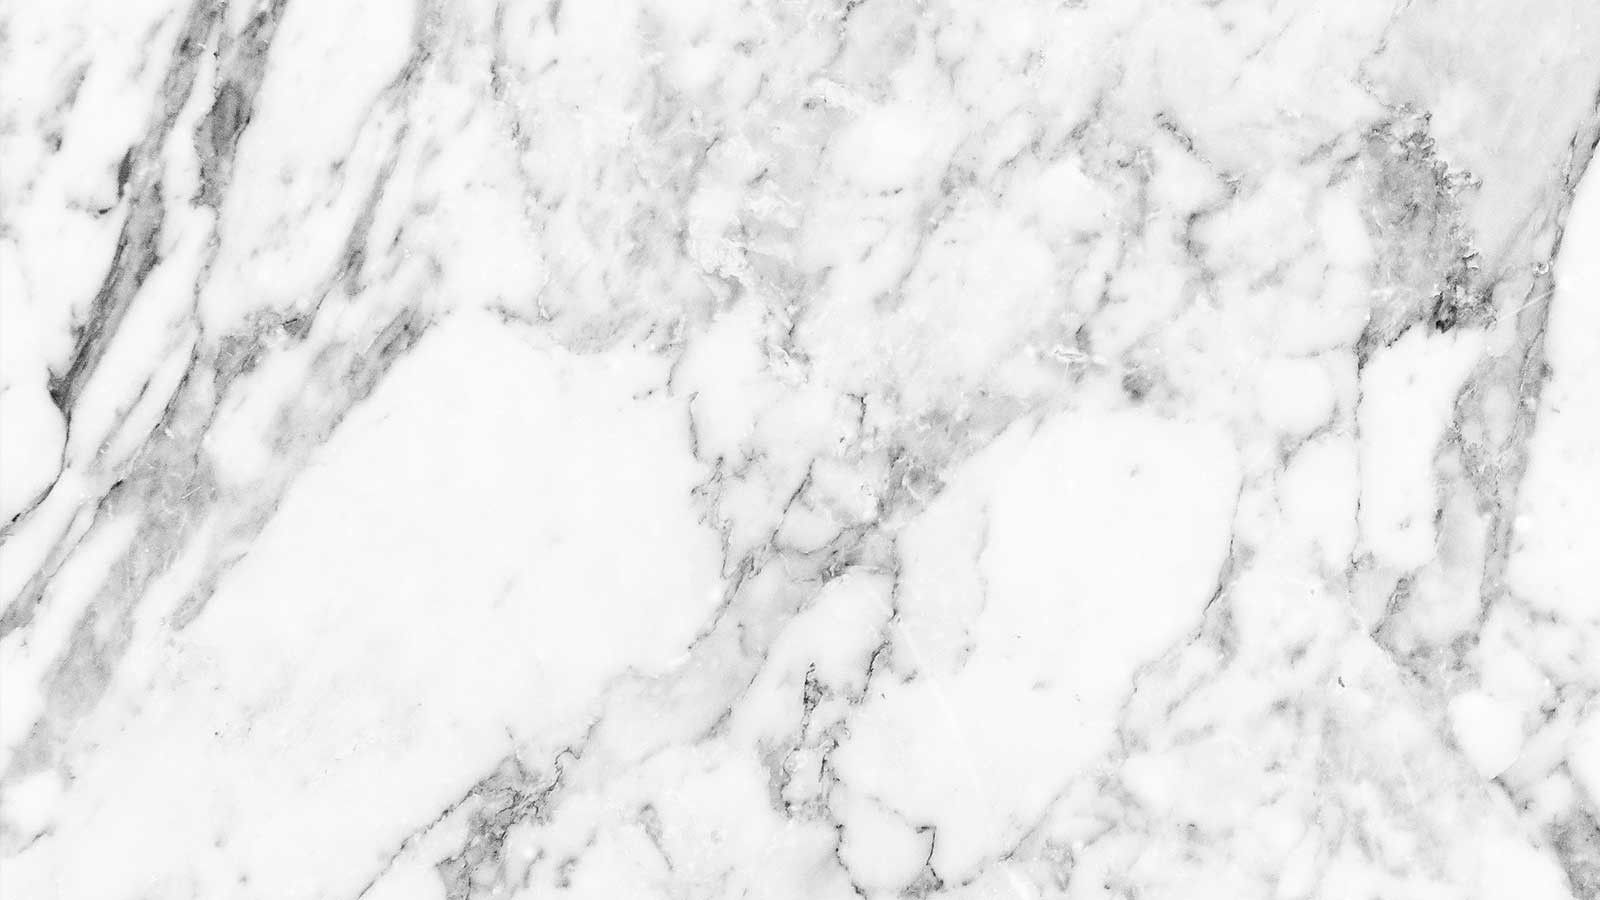 Marble Wallpaper Marble Macbook Elξmnt Iphone Wallpaper In